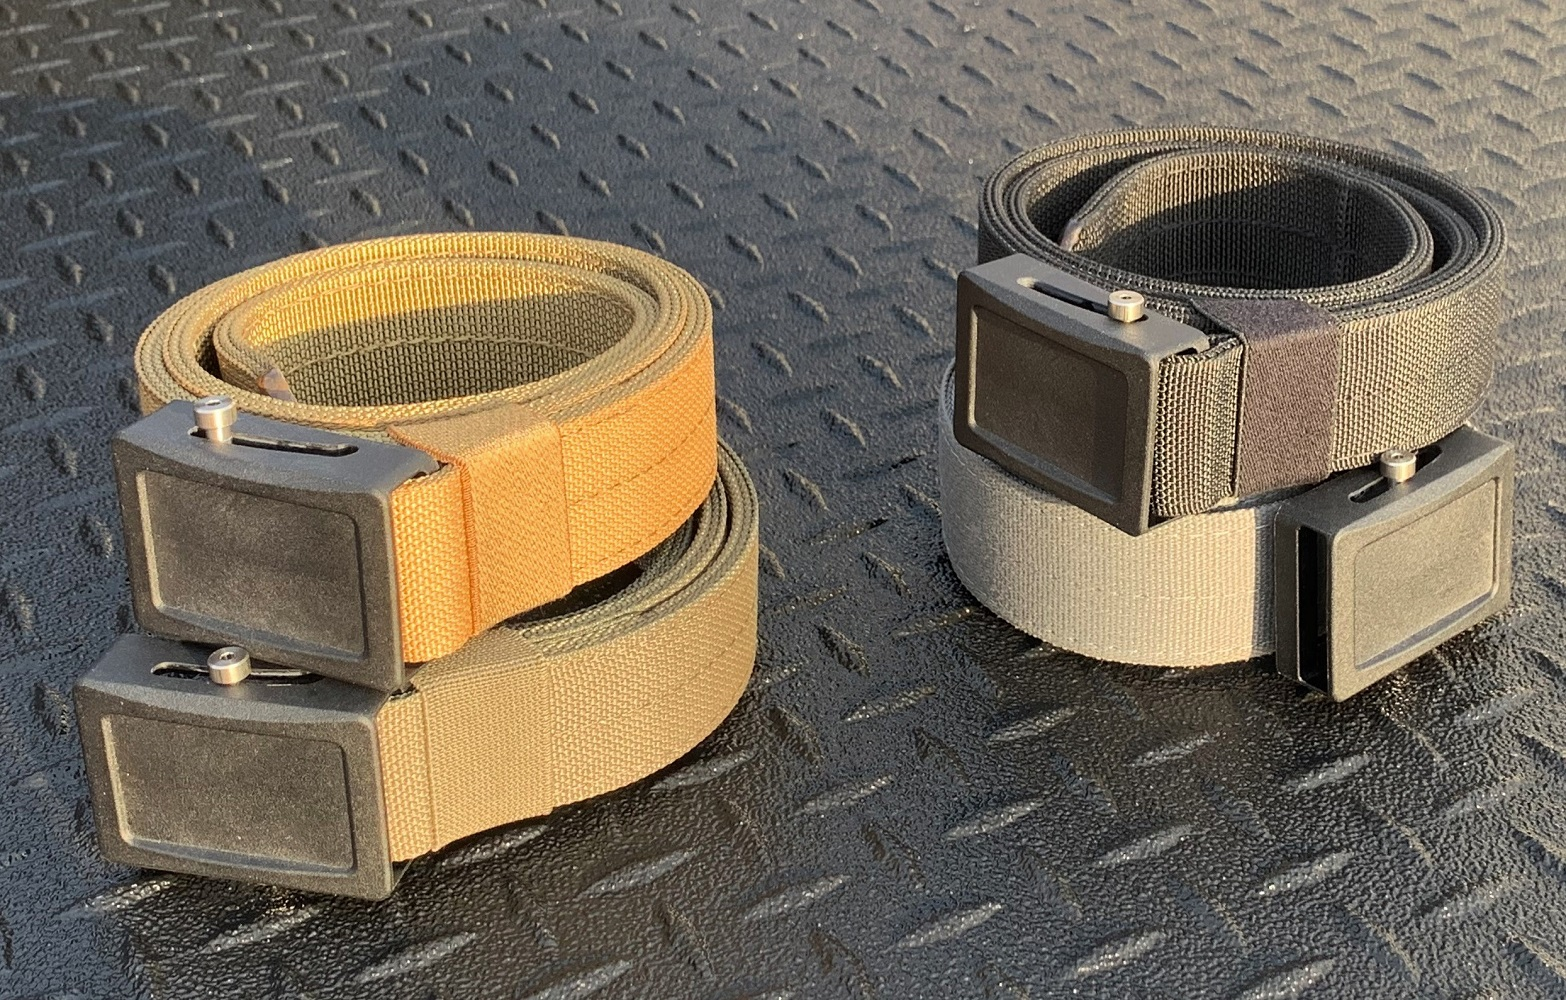 Aegis Enhanced Belt, Gen2 Buckle